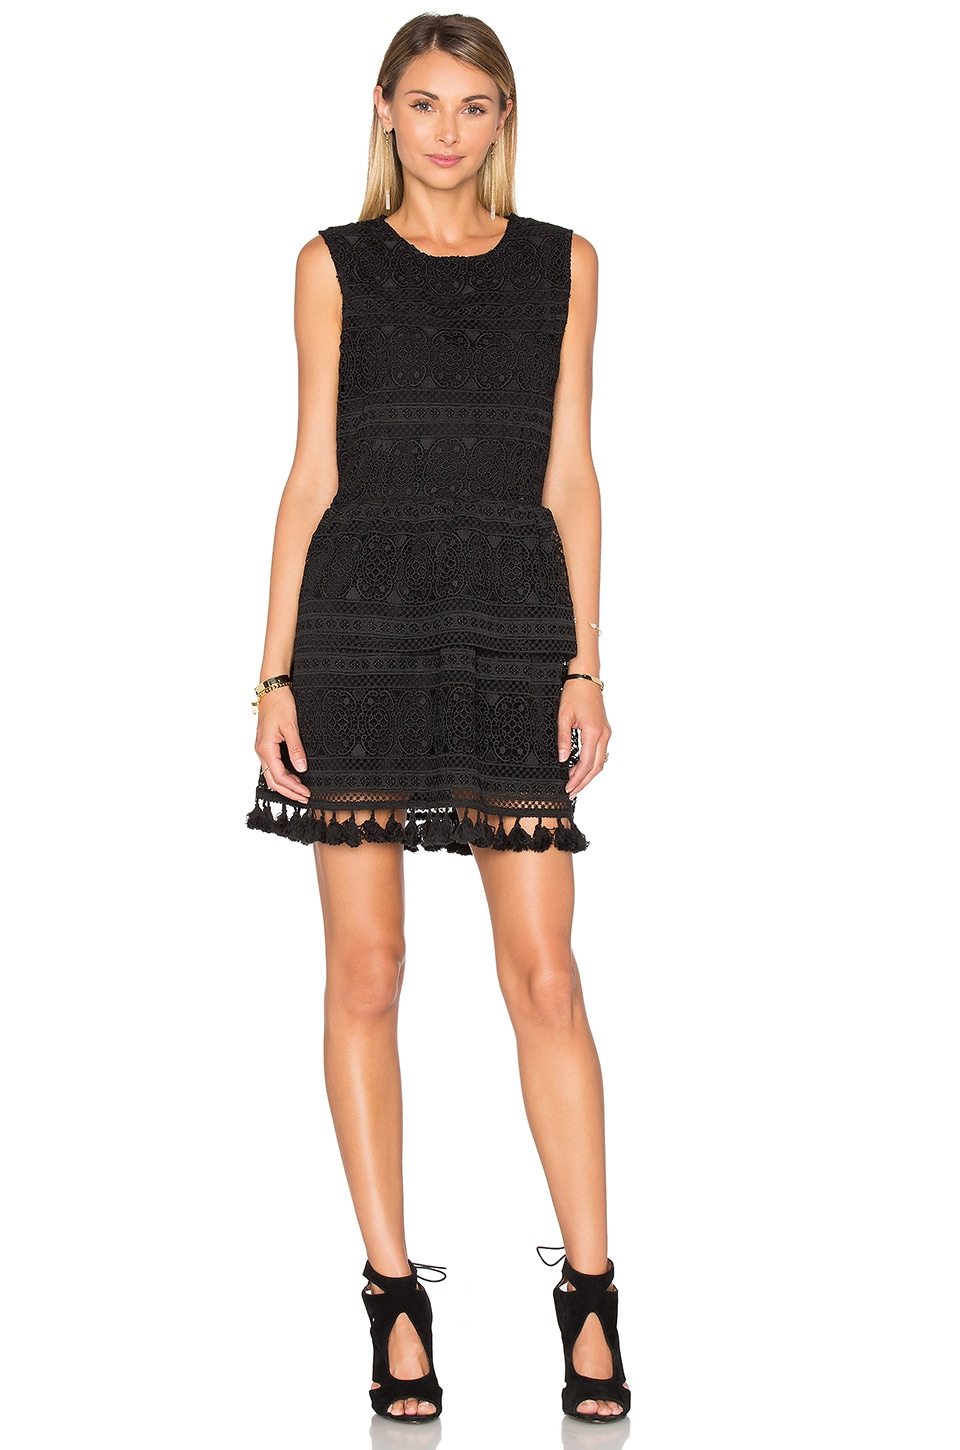 Tassel Lace Dress by ANINE BING